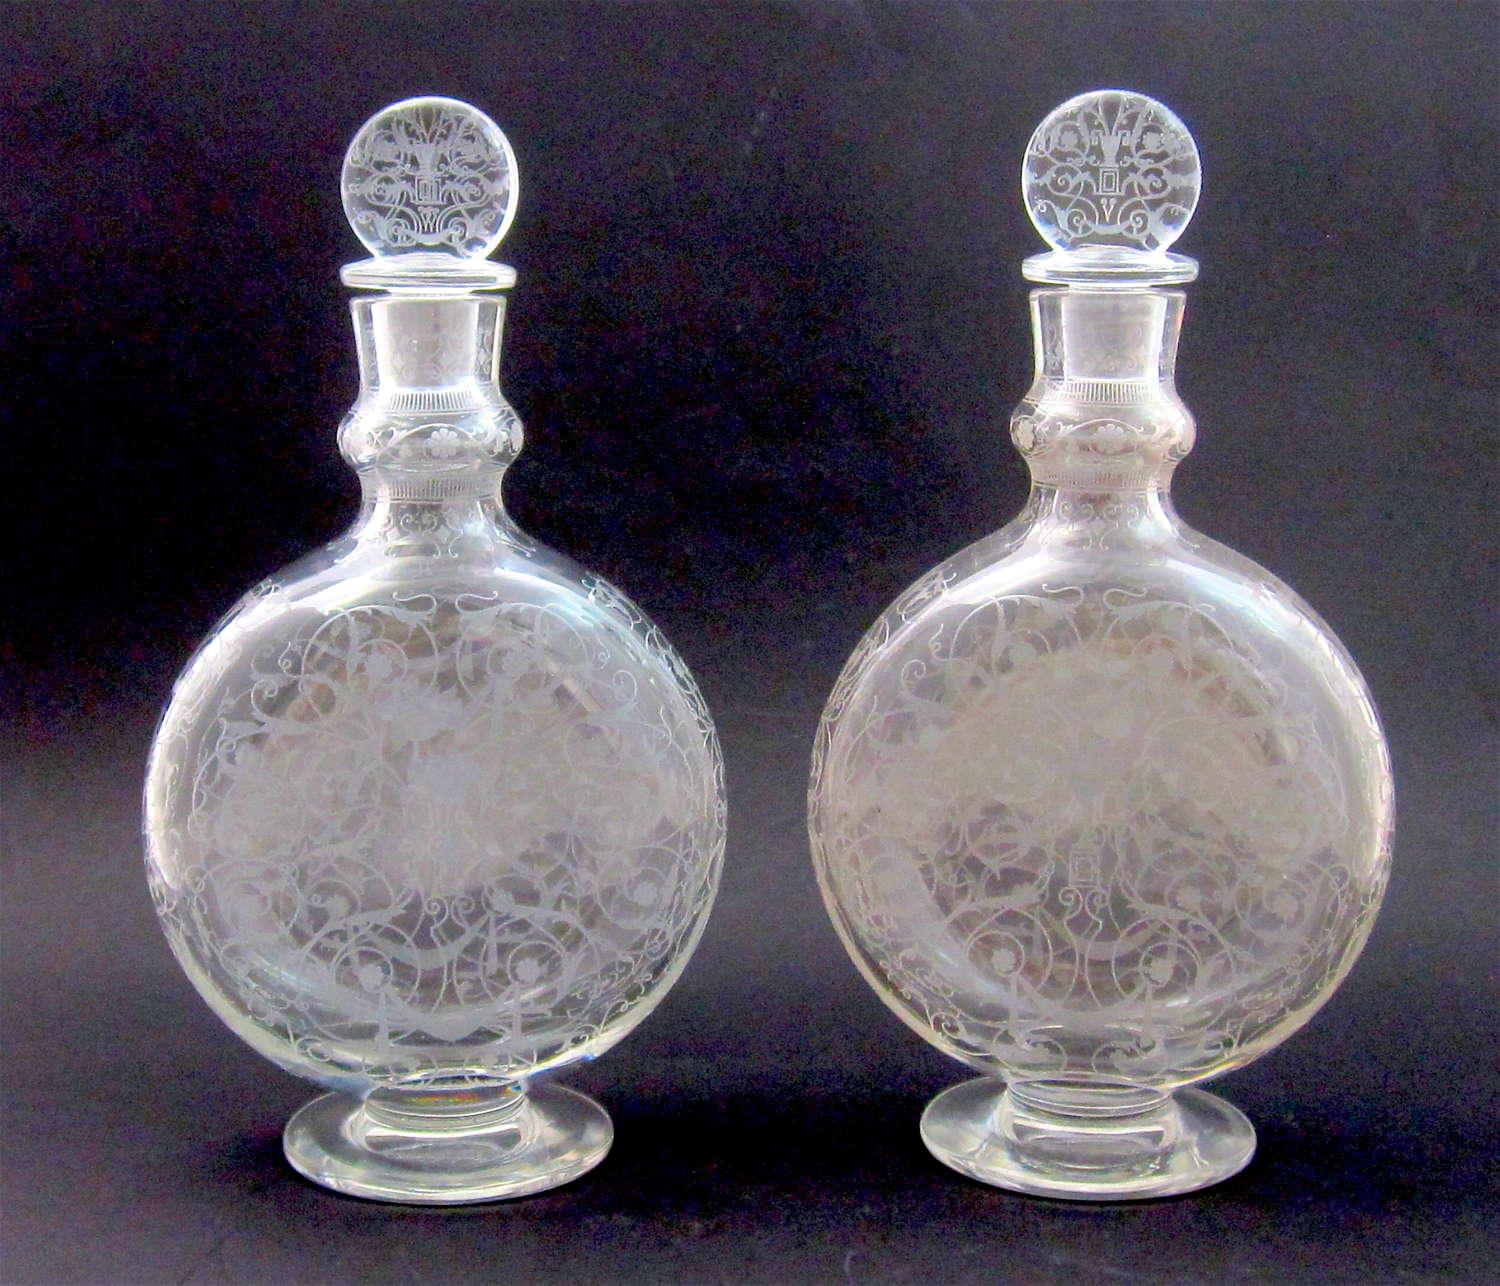 A Tall Pair of Antique Signed Baccarat Engraved Perfume Bottles